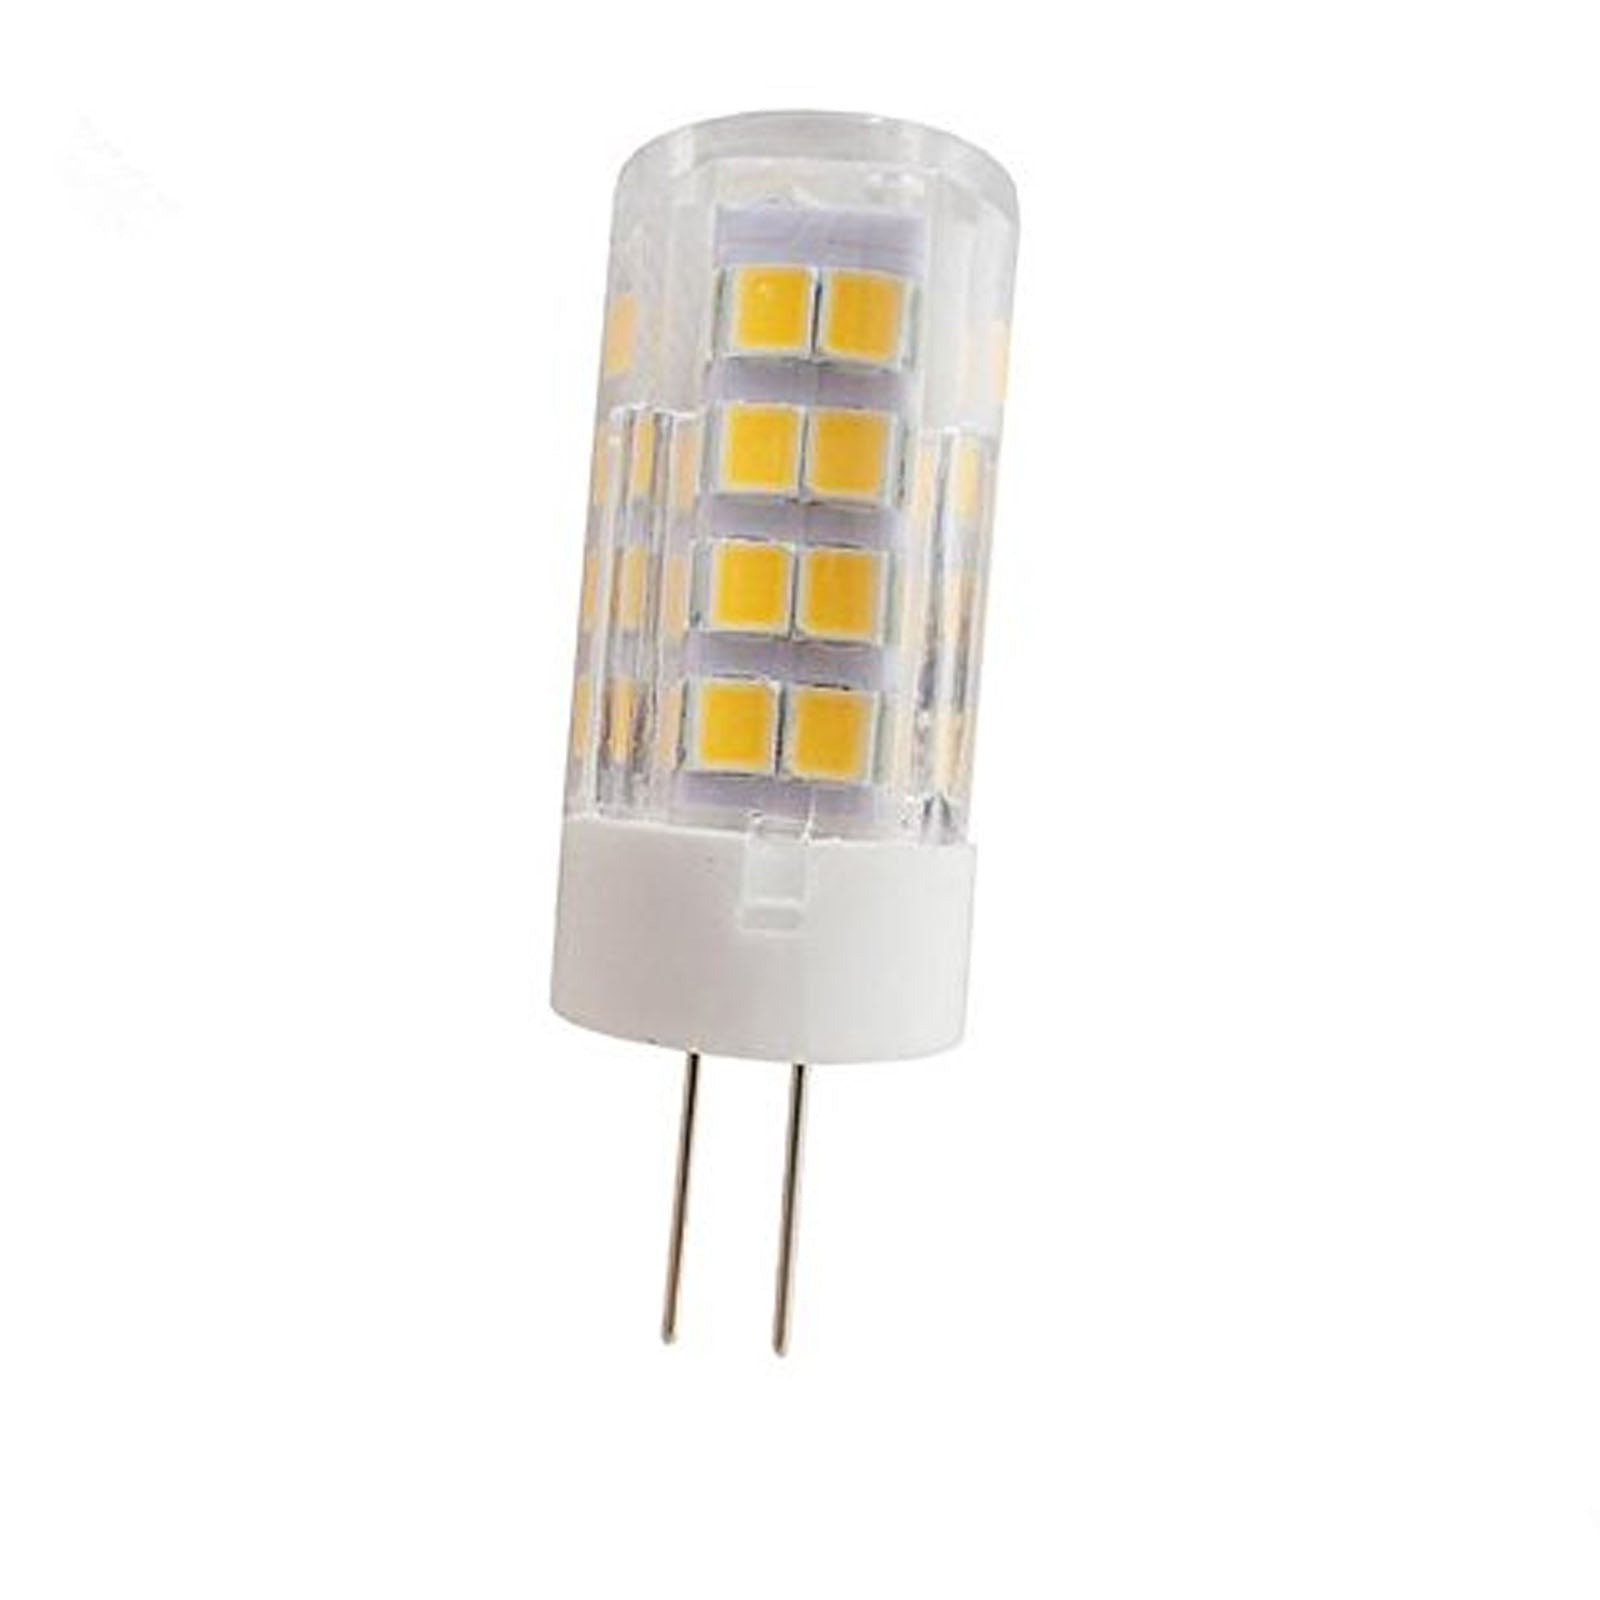 Set of 6 LED G4 bulbs YY-LED-51D-2835-220V-G4